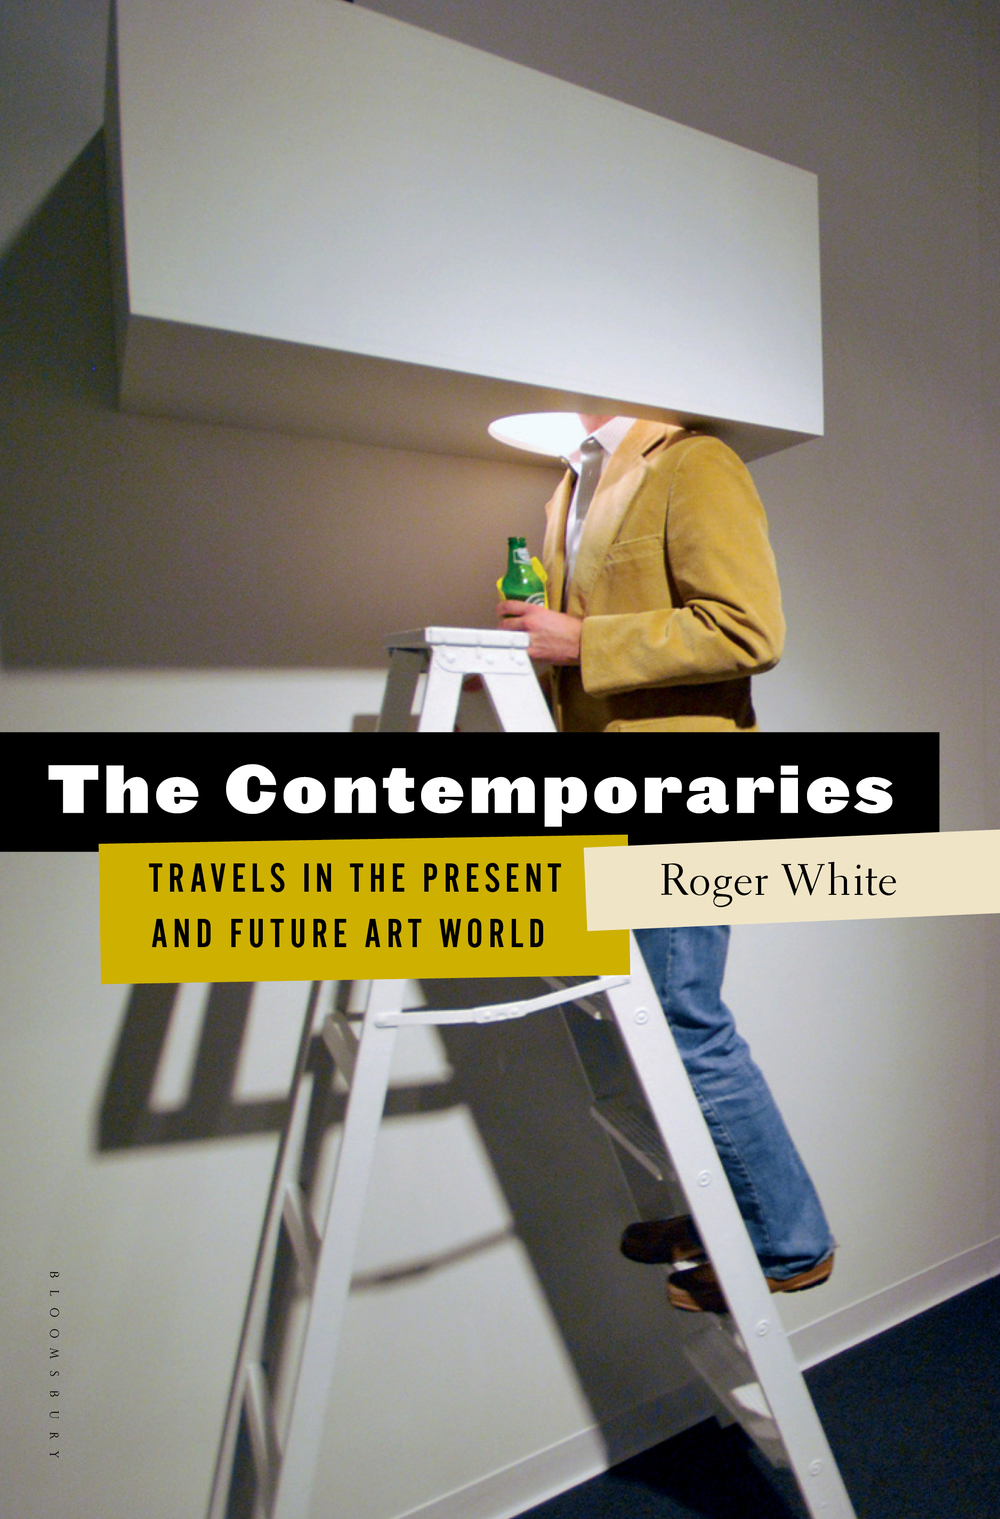 THE CONTEMPORARIES